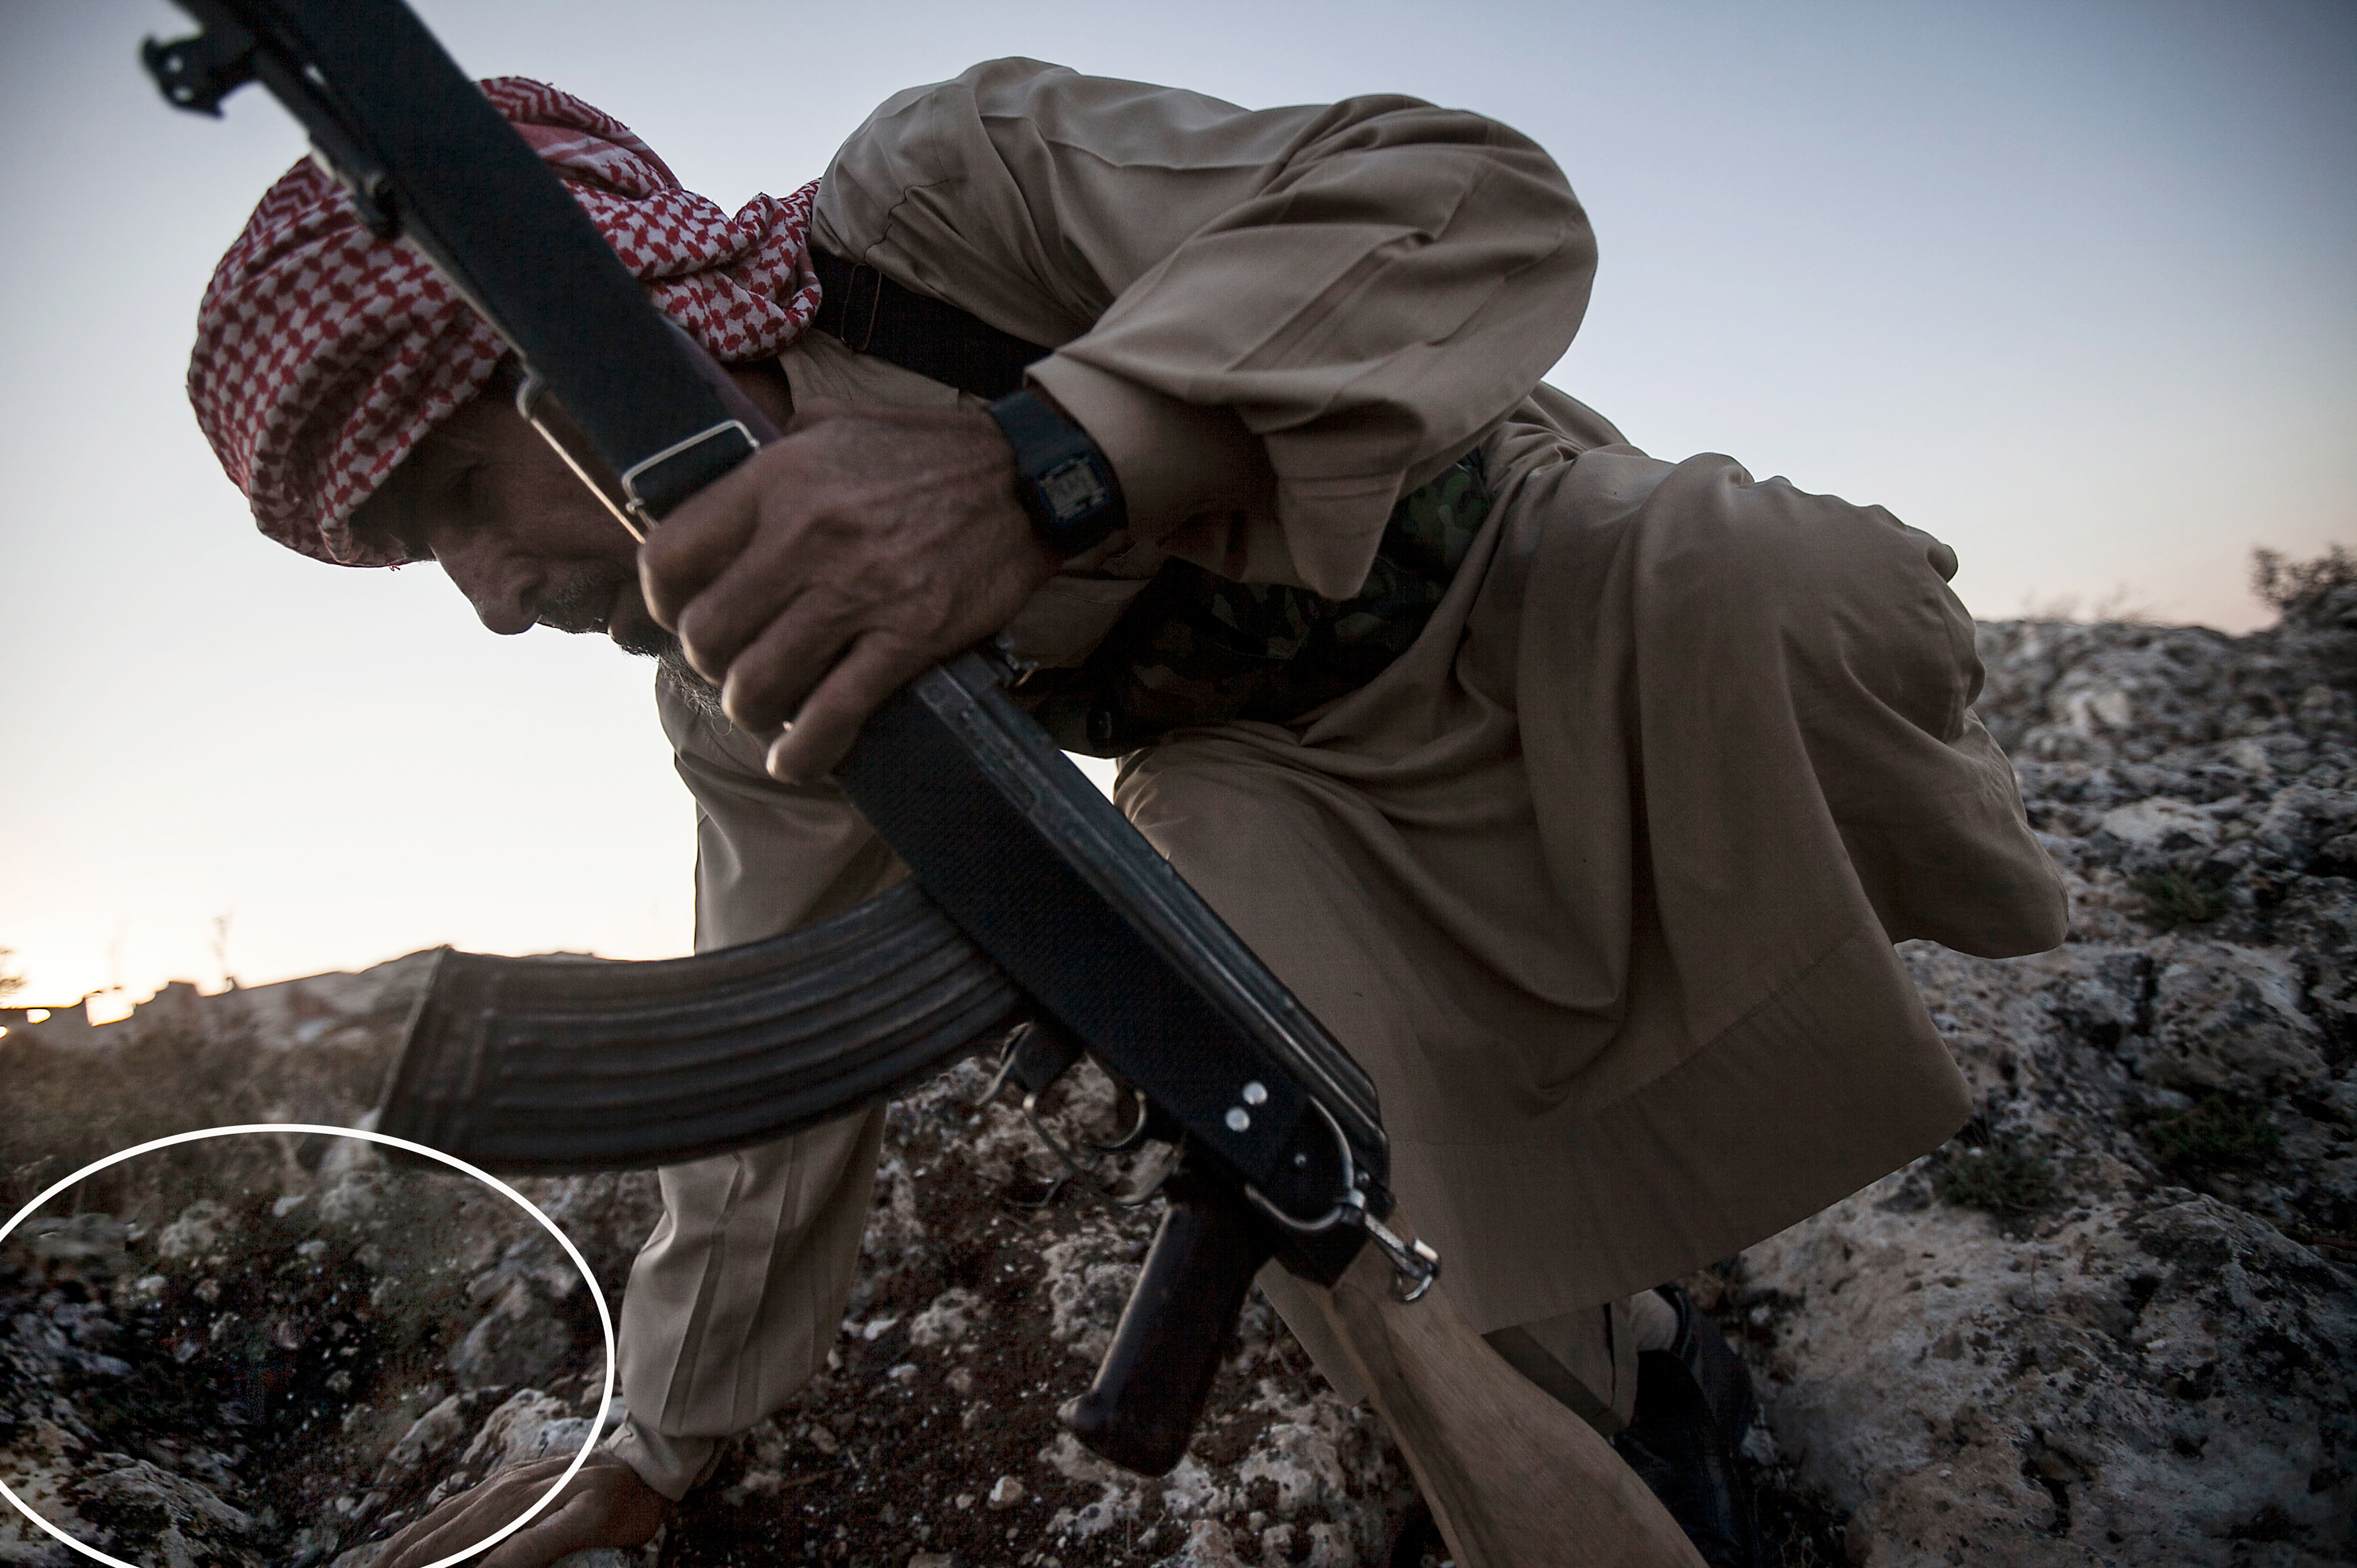 """A Syrian opposition fighter takes cover during an exchange of fire with government forces in Telata village, Syria on Sept. 29, 2013. This  <a href=""""http://www.ap.org/Content/AP-In-The-News/2014/AP-severs-ties-with-photographer-who-altered-work"""" target=""""_blank"""">manipulated</a>  photo was caught by the Associated Press which then severed ties with the freelance photographer, who it says violated its ethical standards by altering the photo."""